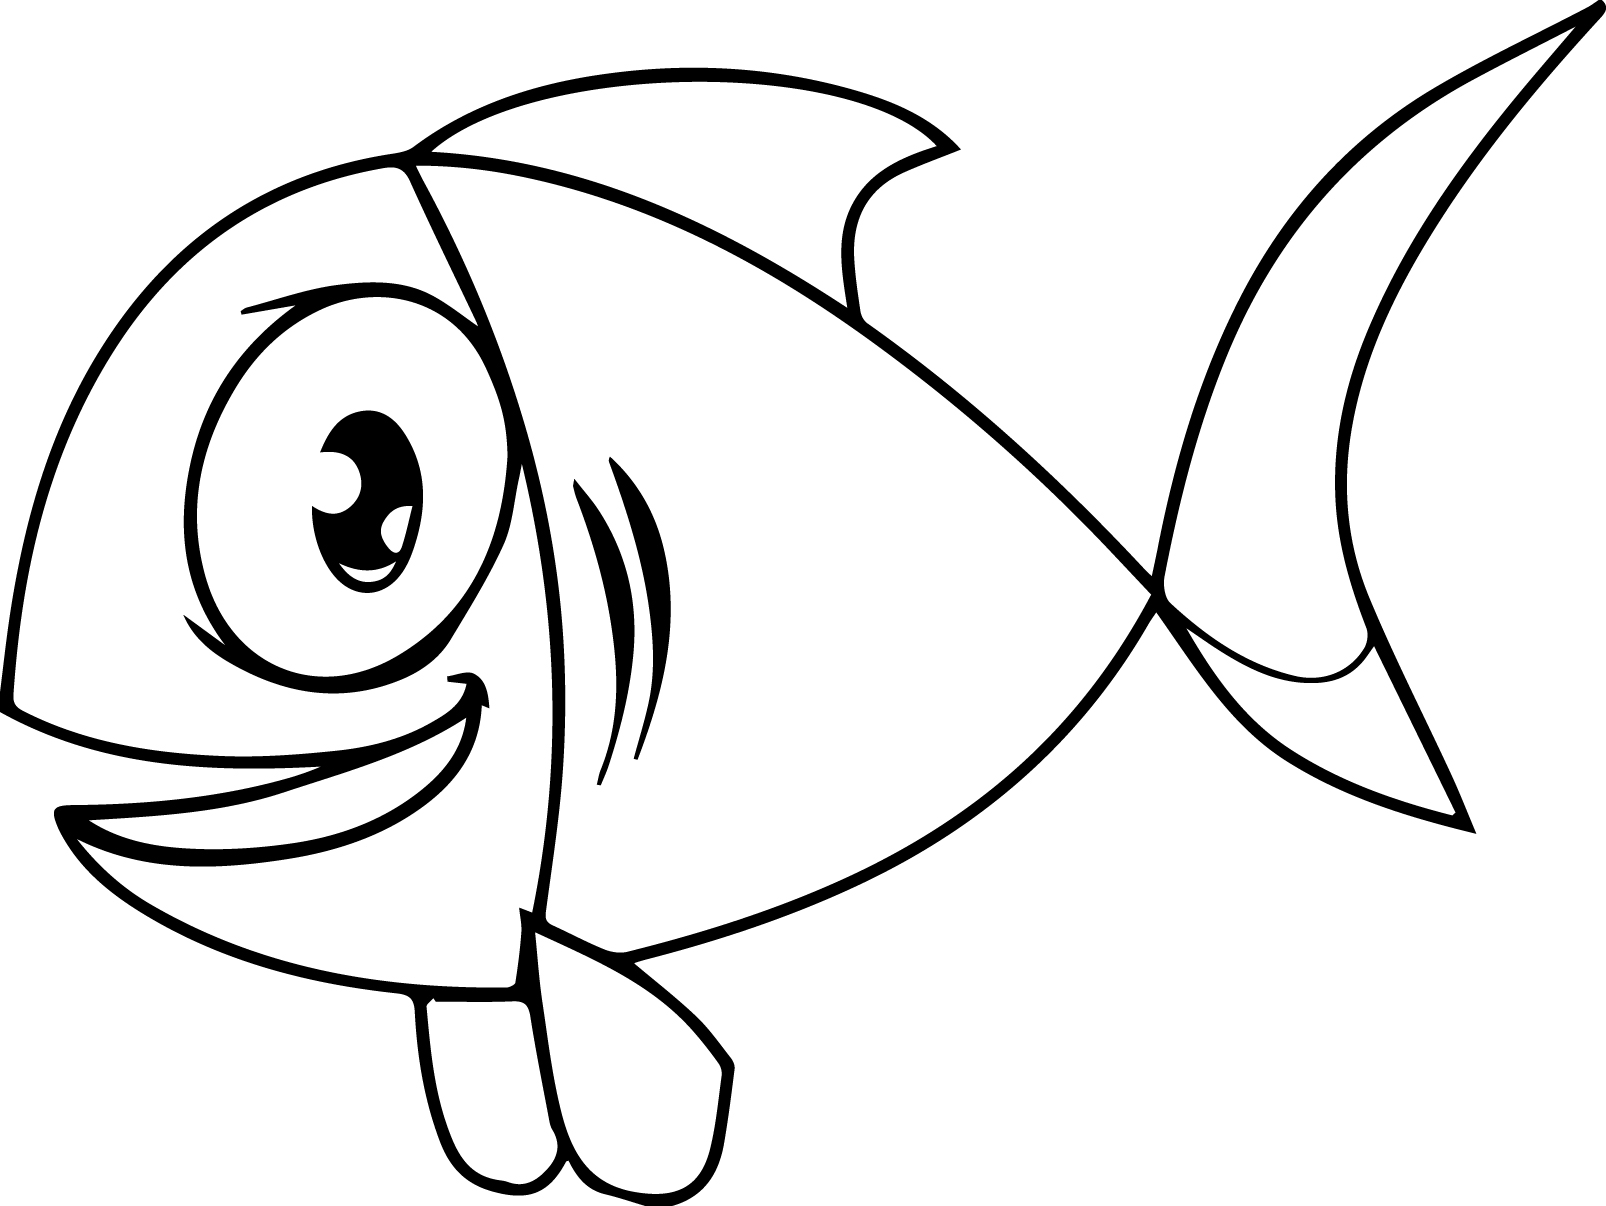 Big Eye Cartoon Fish Coloring Page Sheet Wecoloringpage